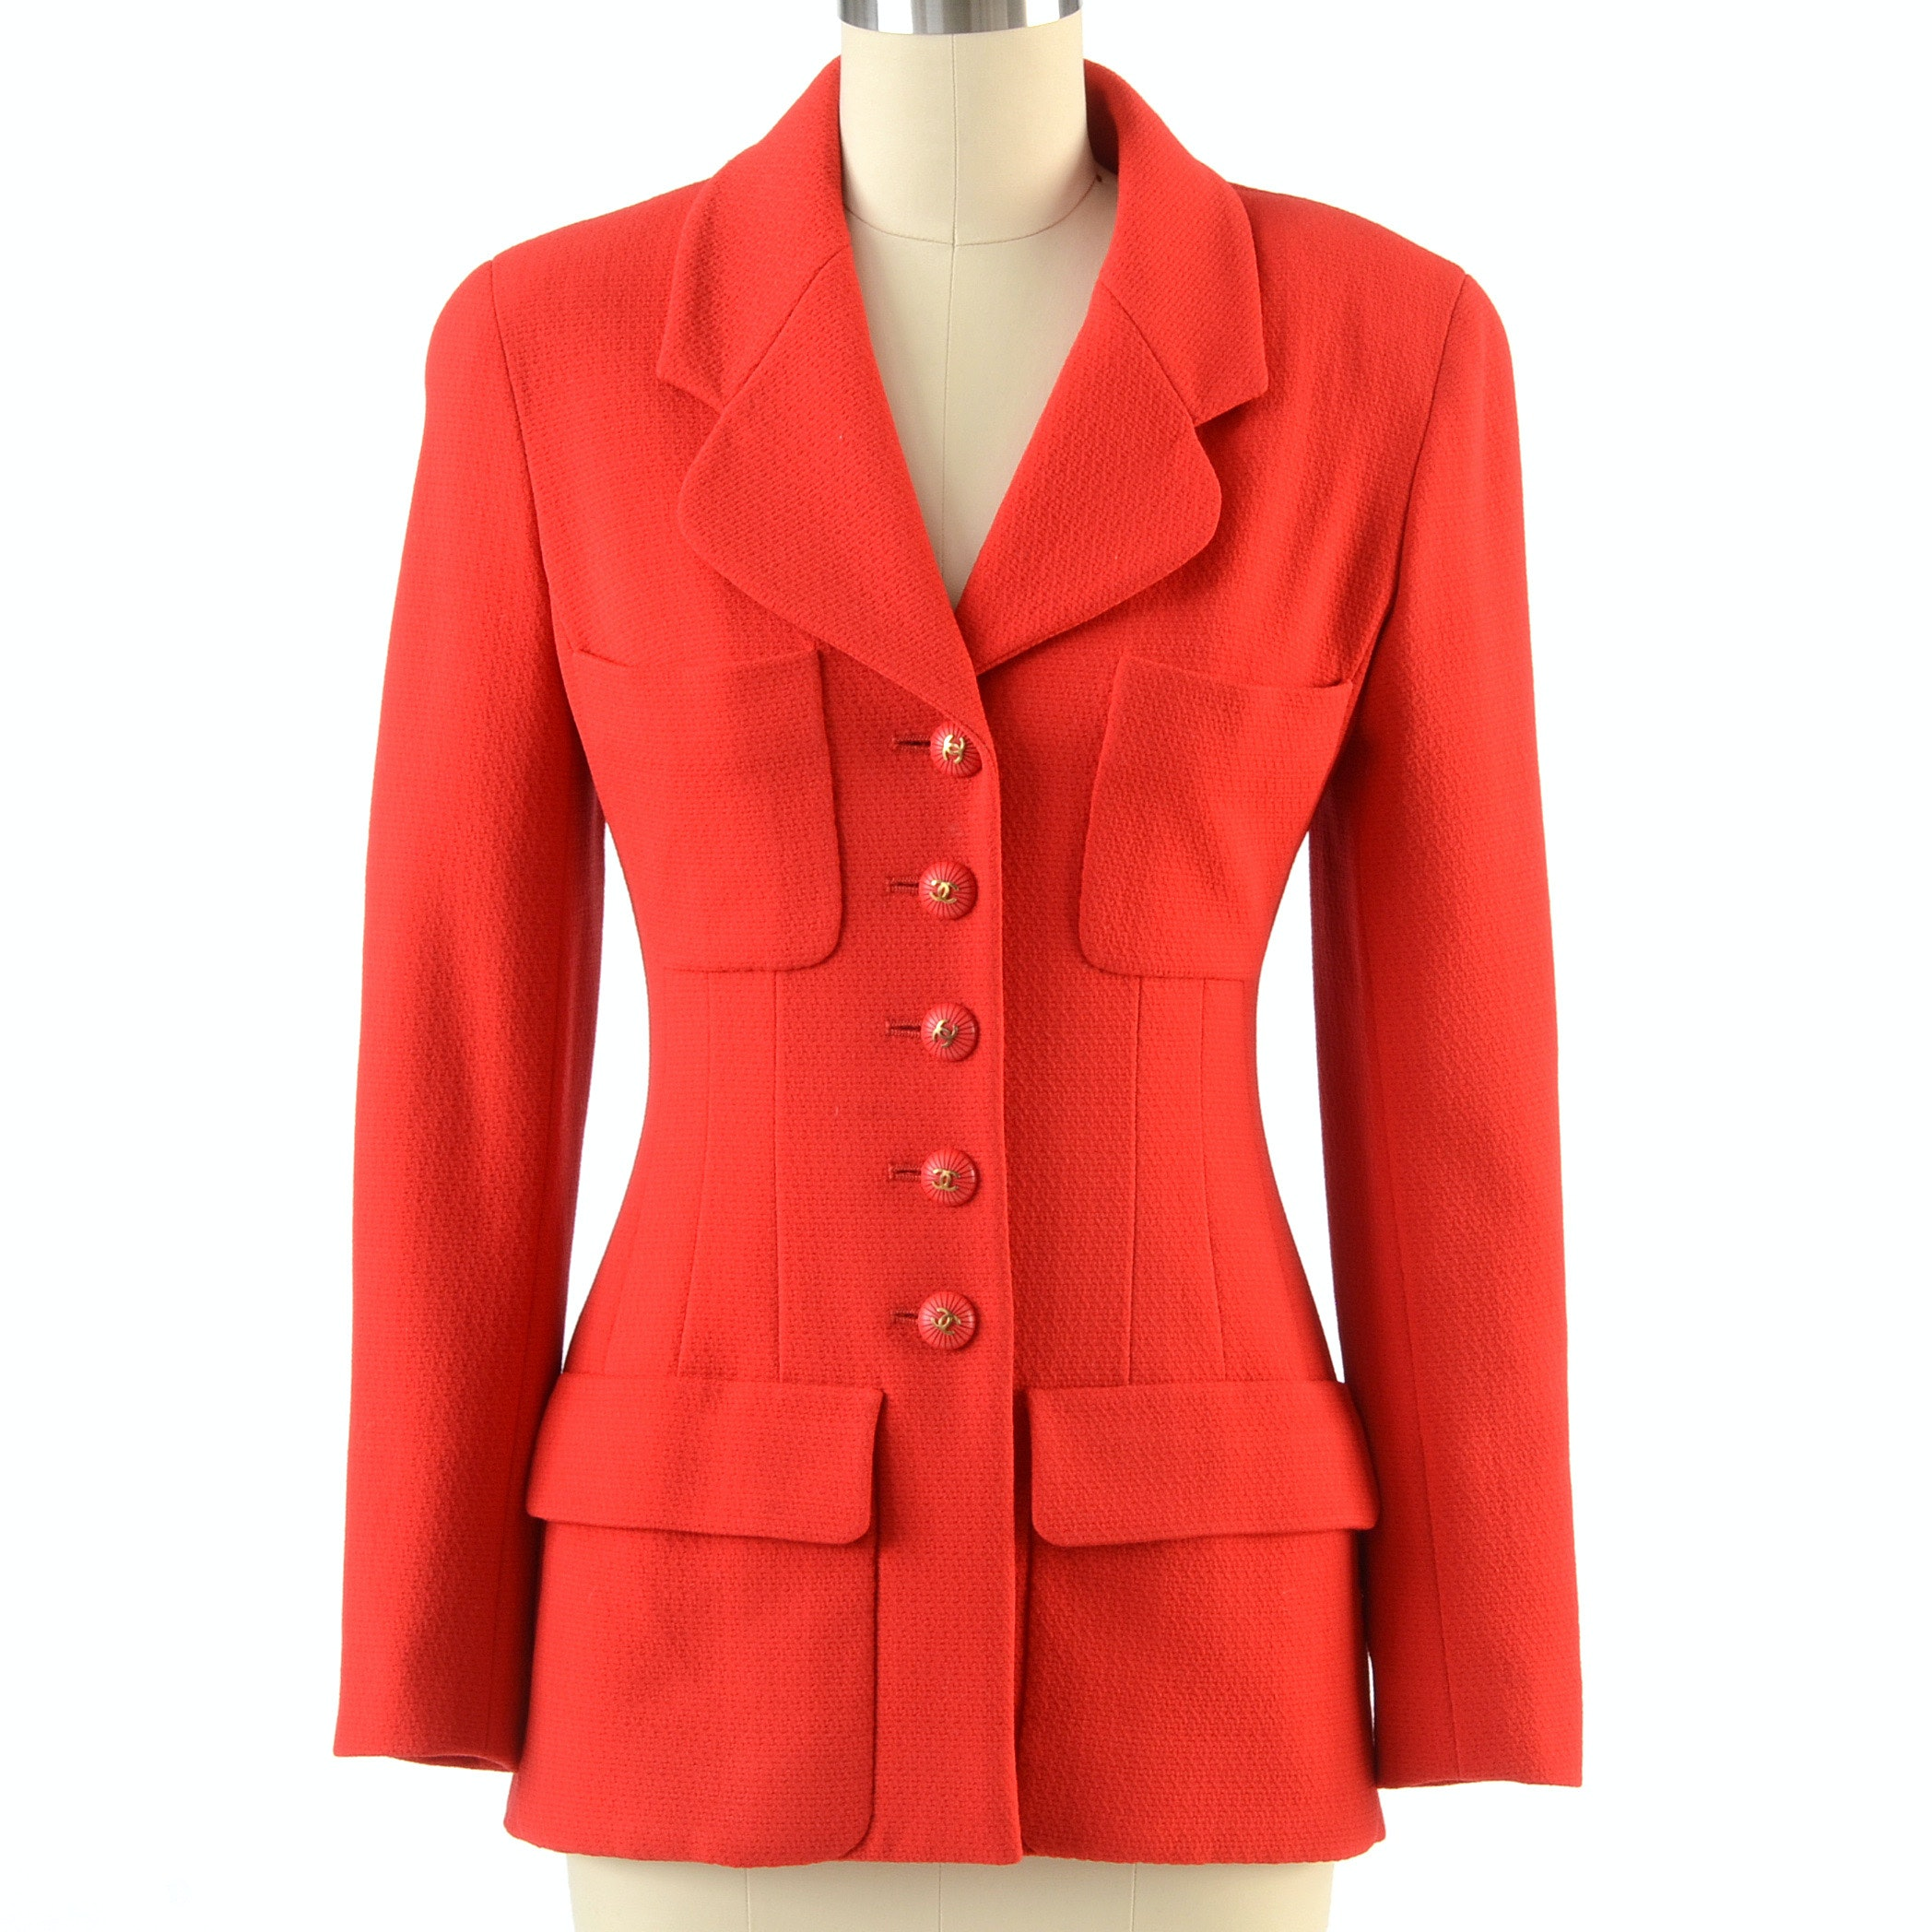 Chanel Boutique Red Wool Suit Blazer